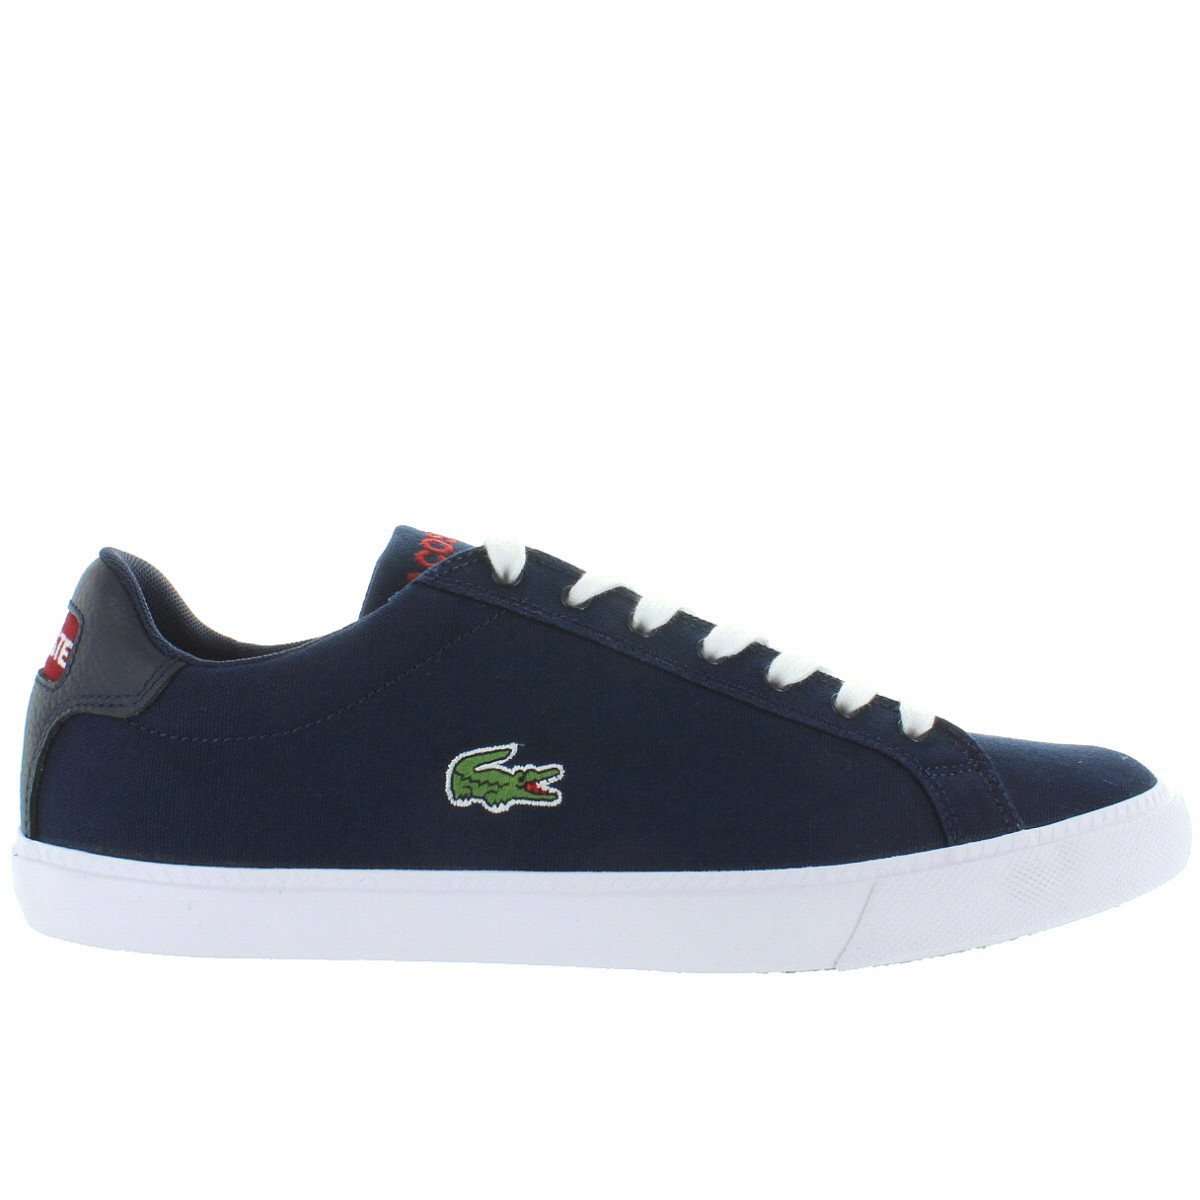 fcdb8779e Galleon - Lacoste Men s Grad Vulc Fb Fashion Sneaker